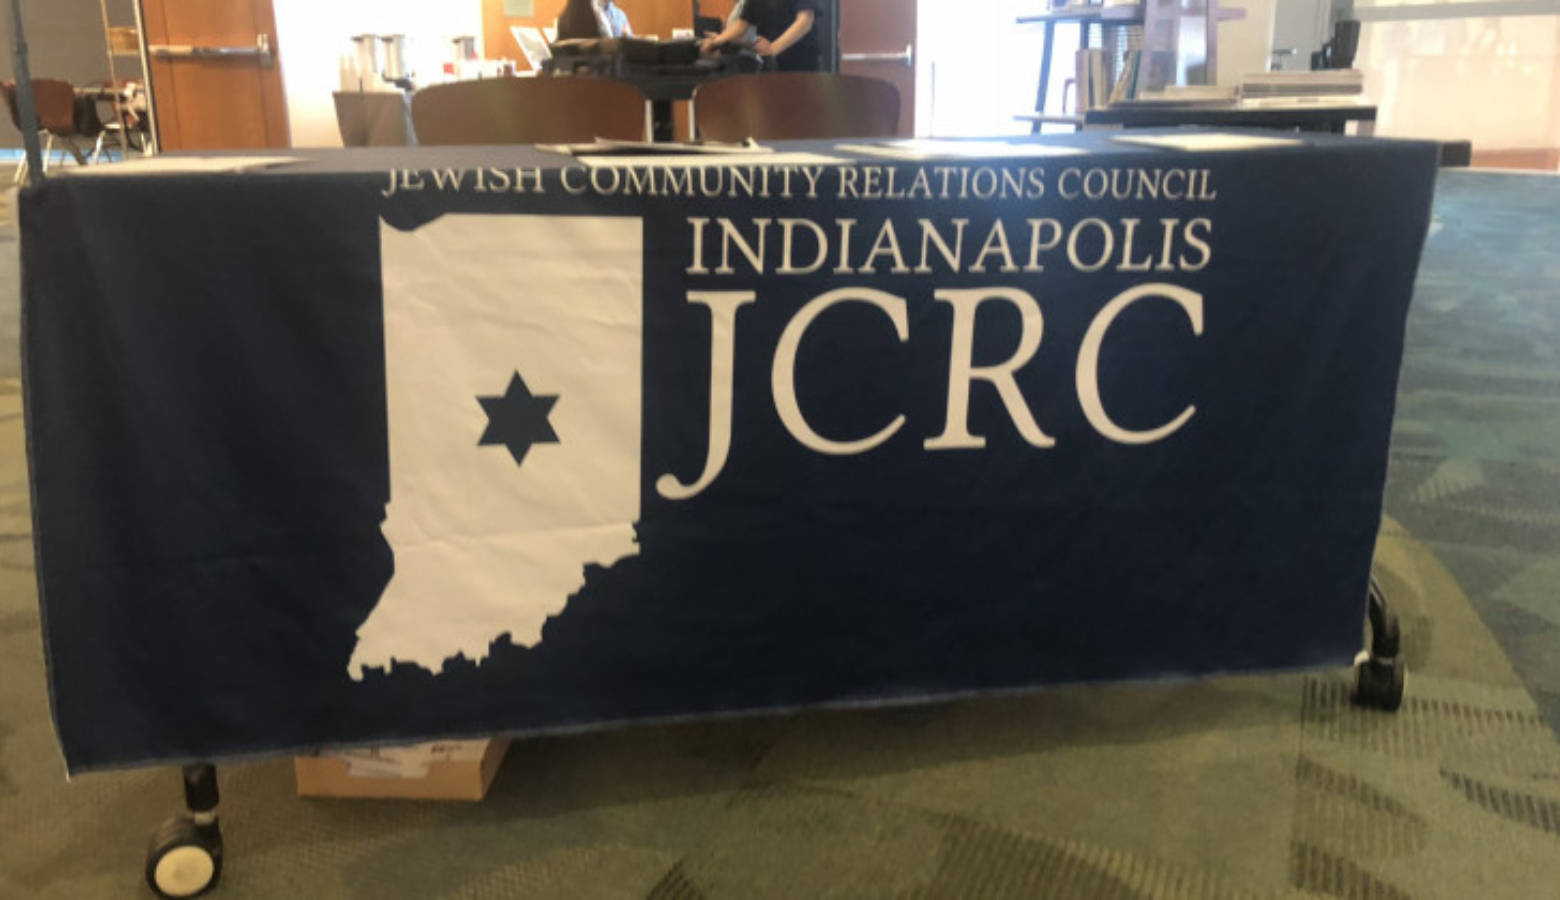 The Indianapolis Jewish Community Relations Council hosted the symposium on anti-Semitism in the Indianapolis Central Library.